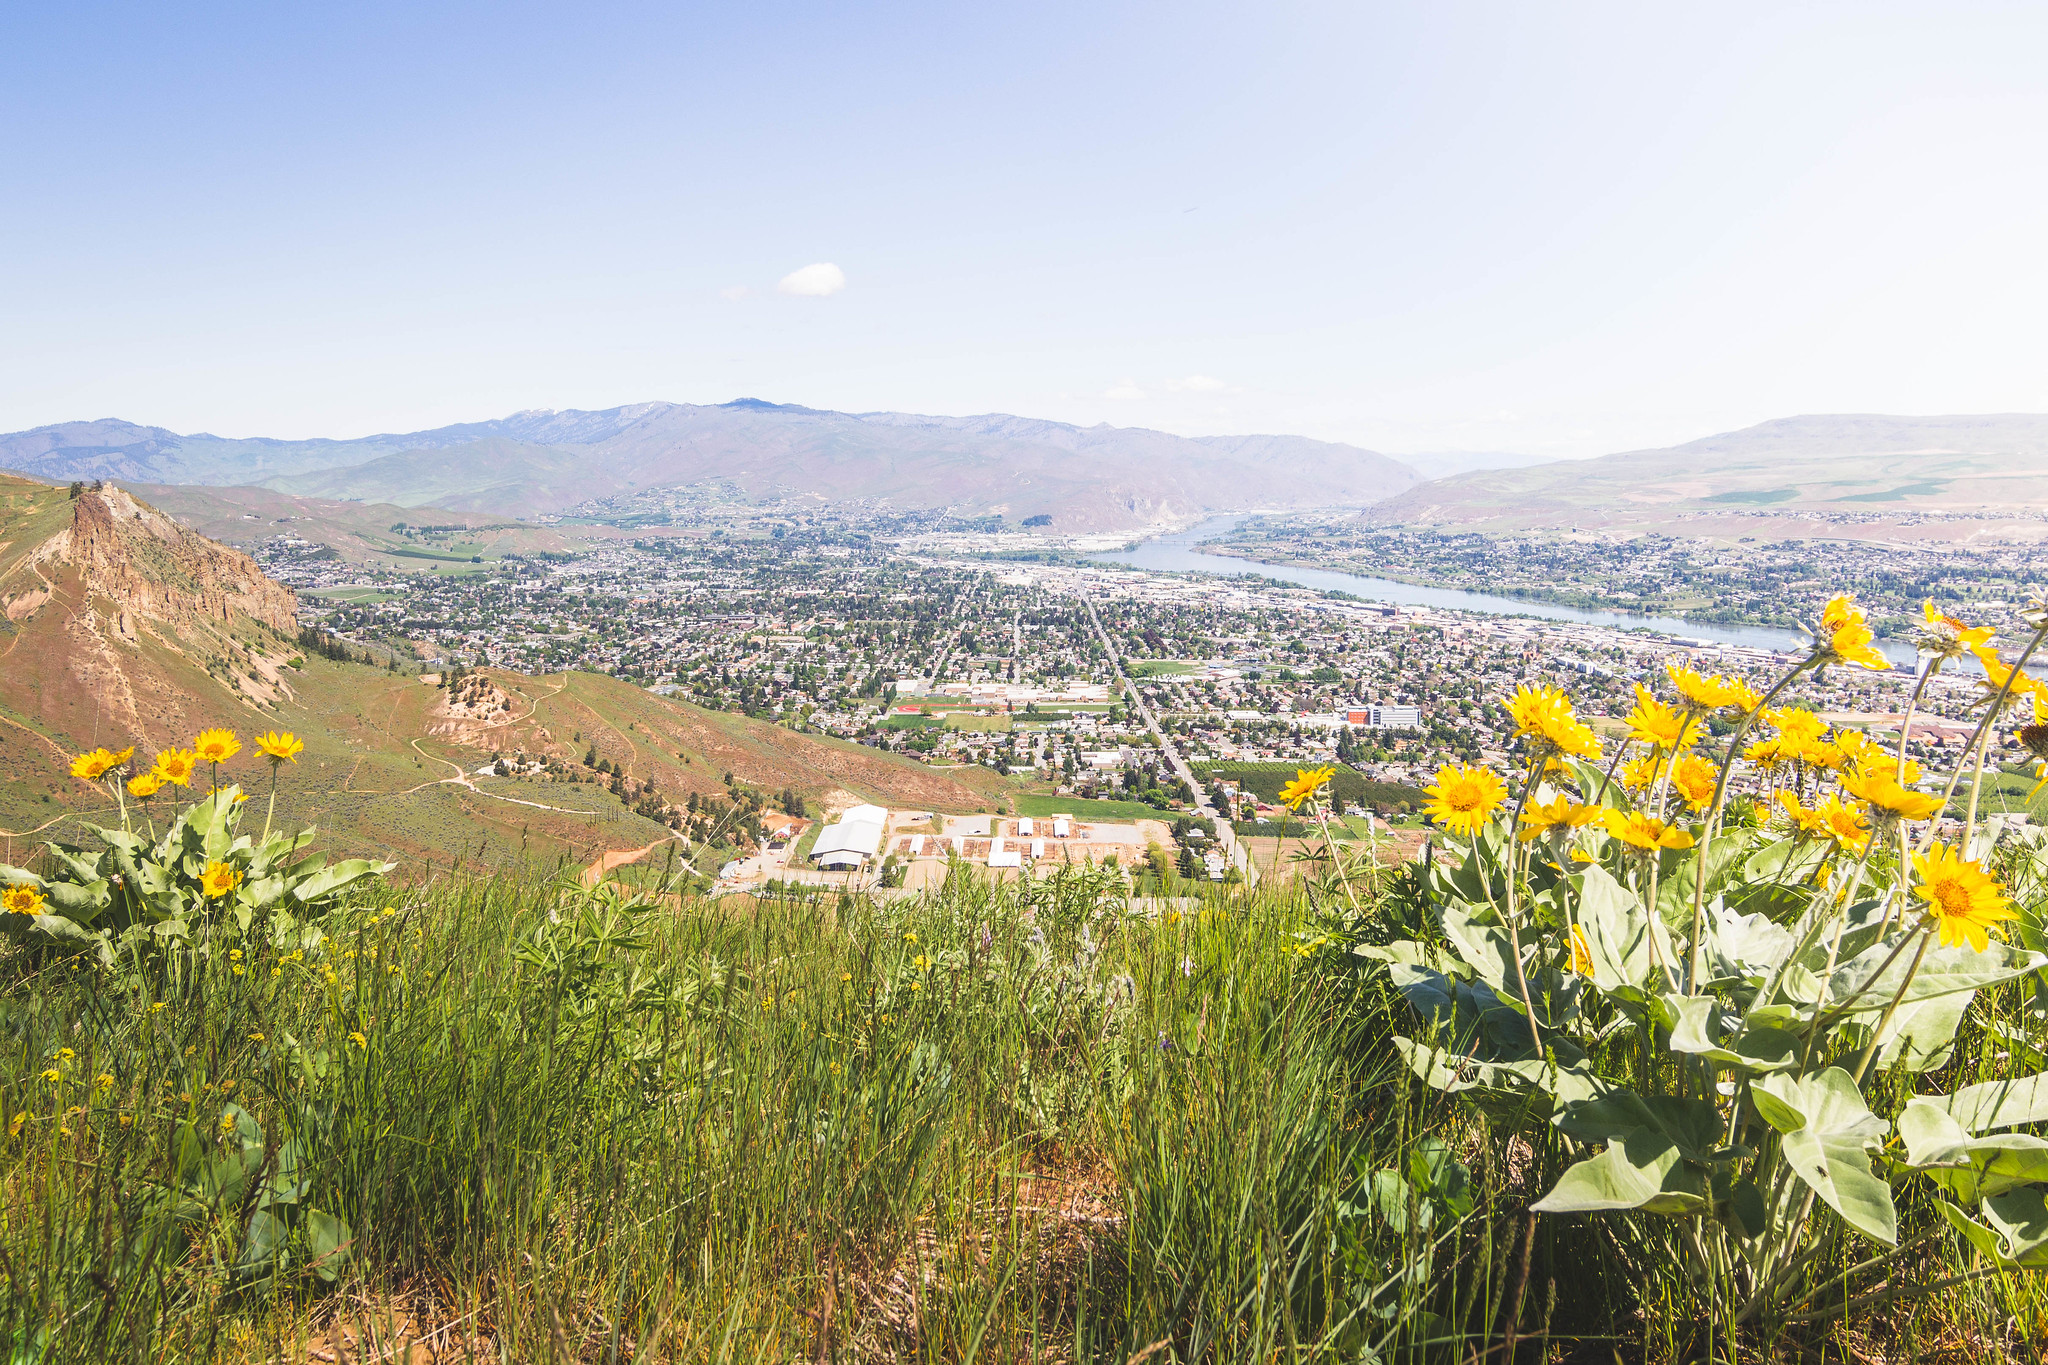 City of Wenatchee from near Rooster Comb